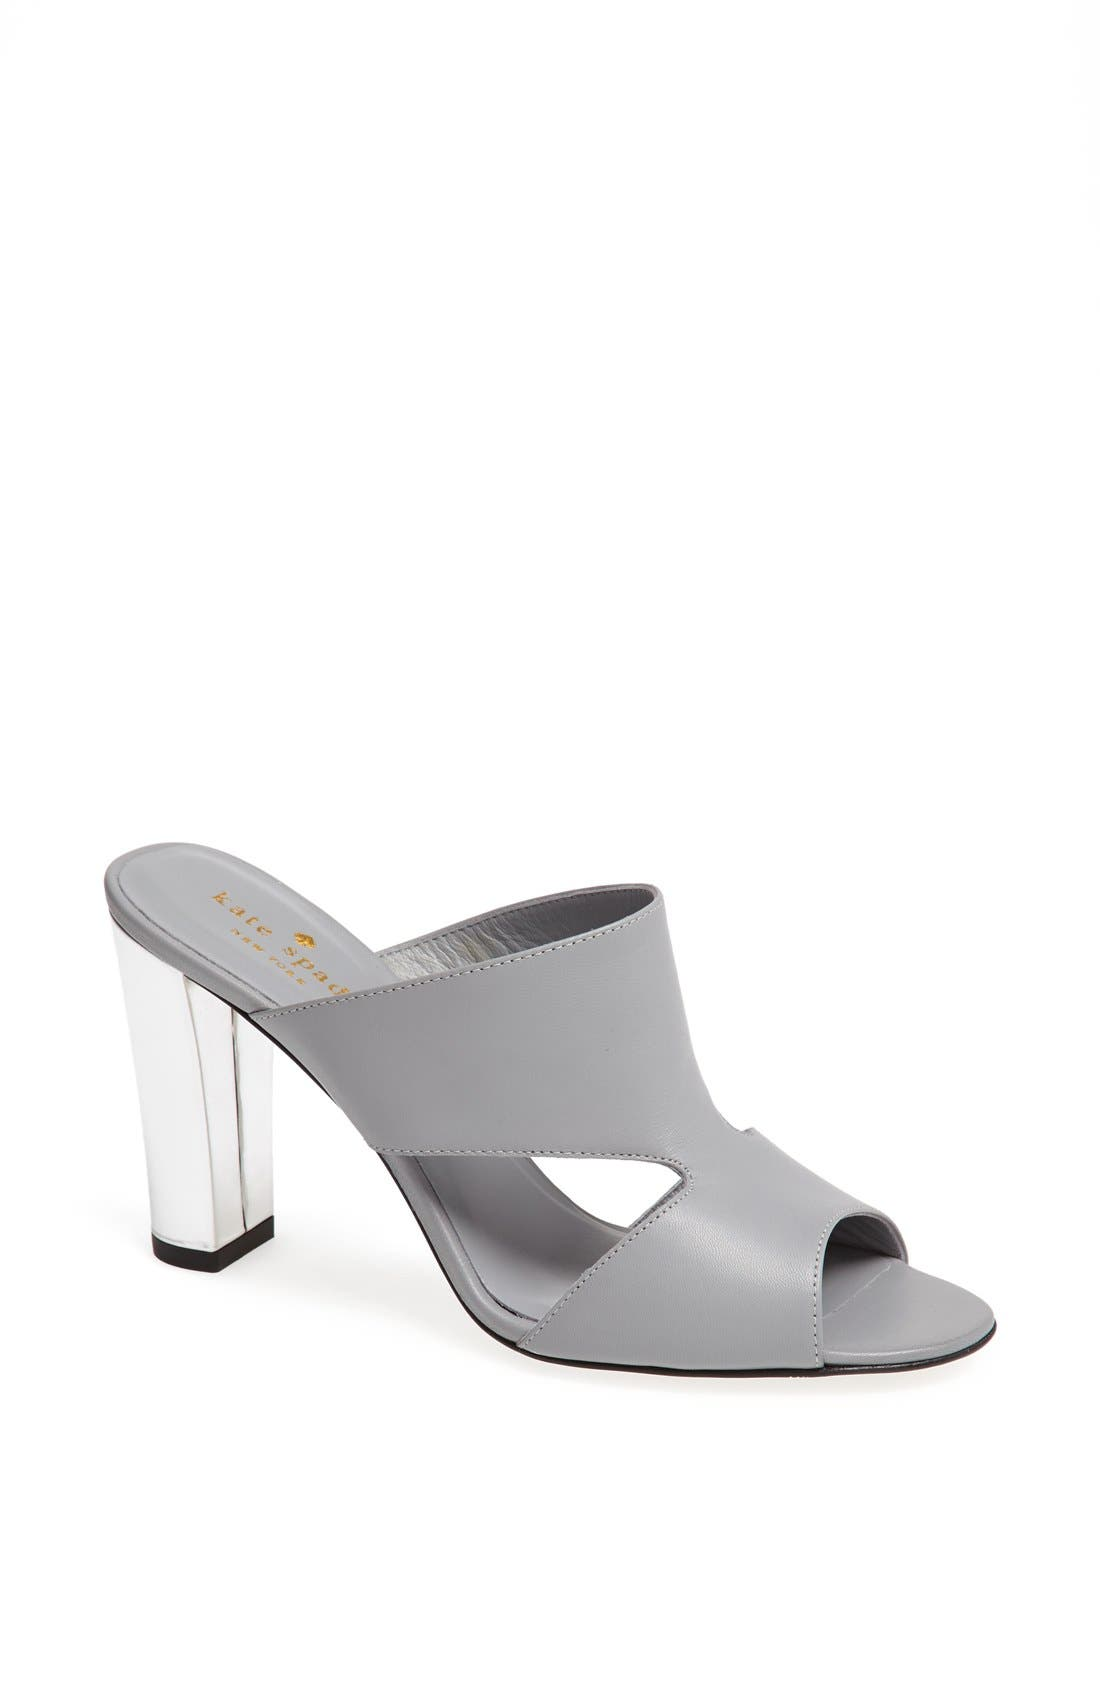 Alternate Image 1 Selected - kate spade new york 'iberia' sandal